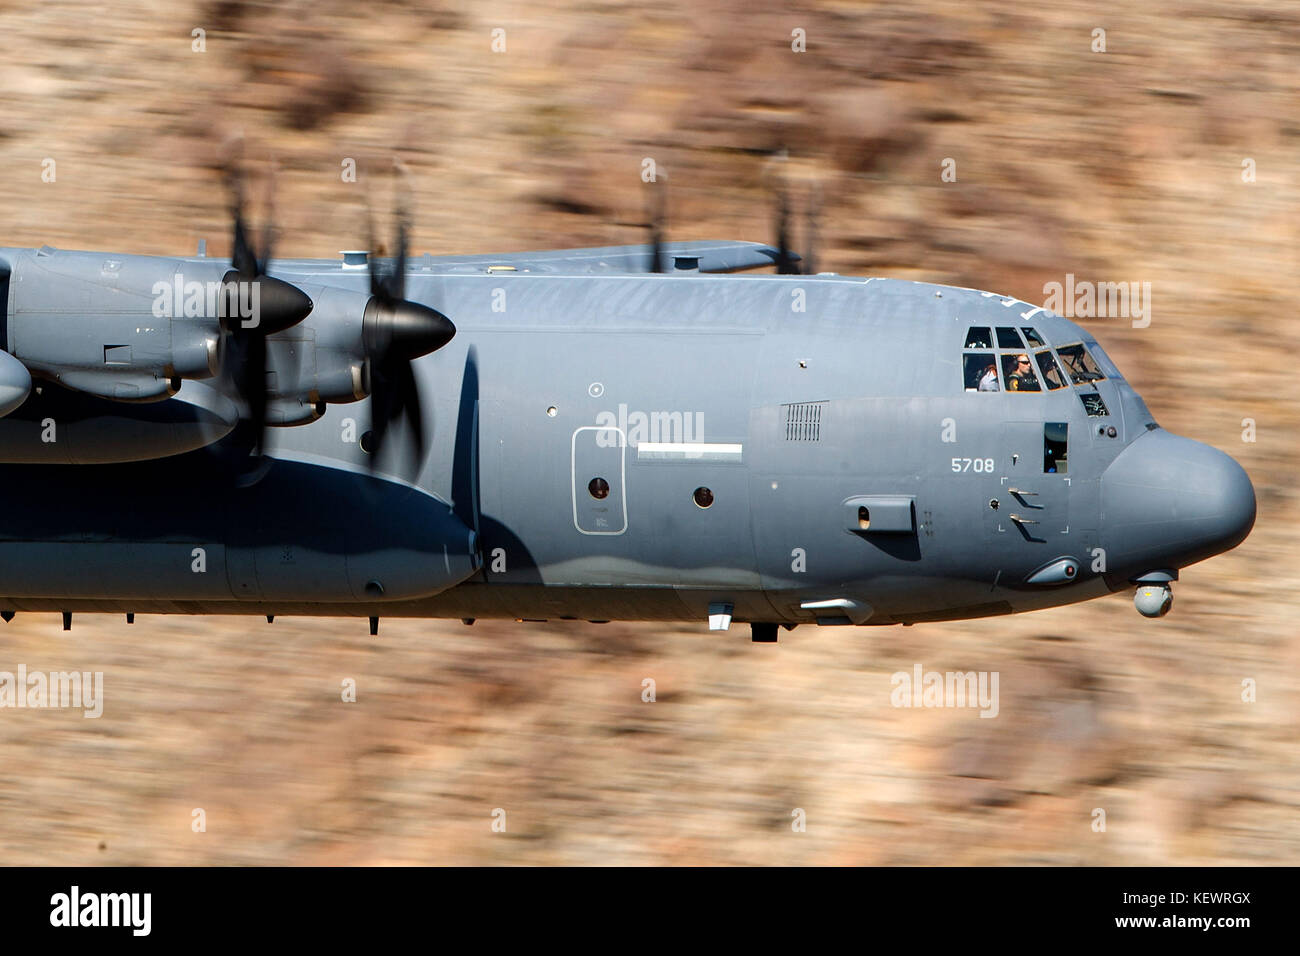 United States Air Force Lockheed HC-130J Combat King II from the 79th Rescue Squadron, Davis-Monthan Air Force Base, - Stock Image